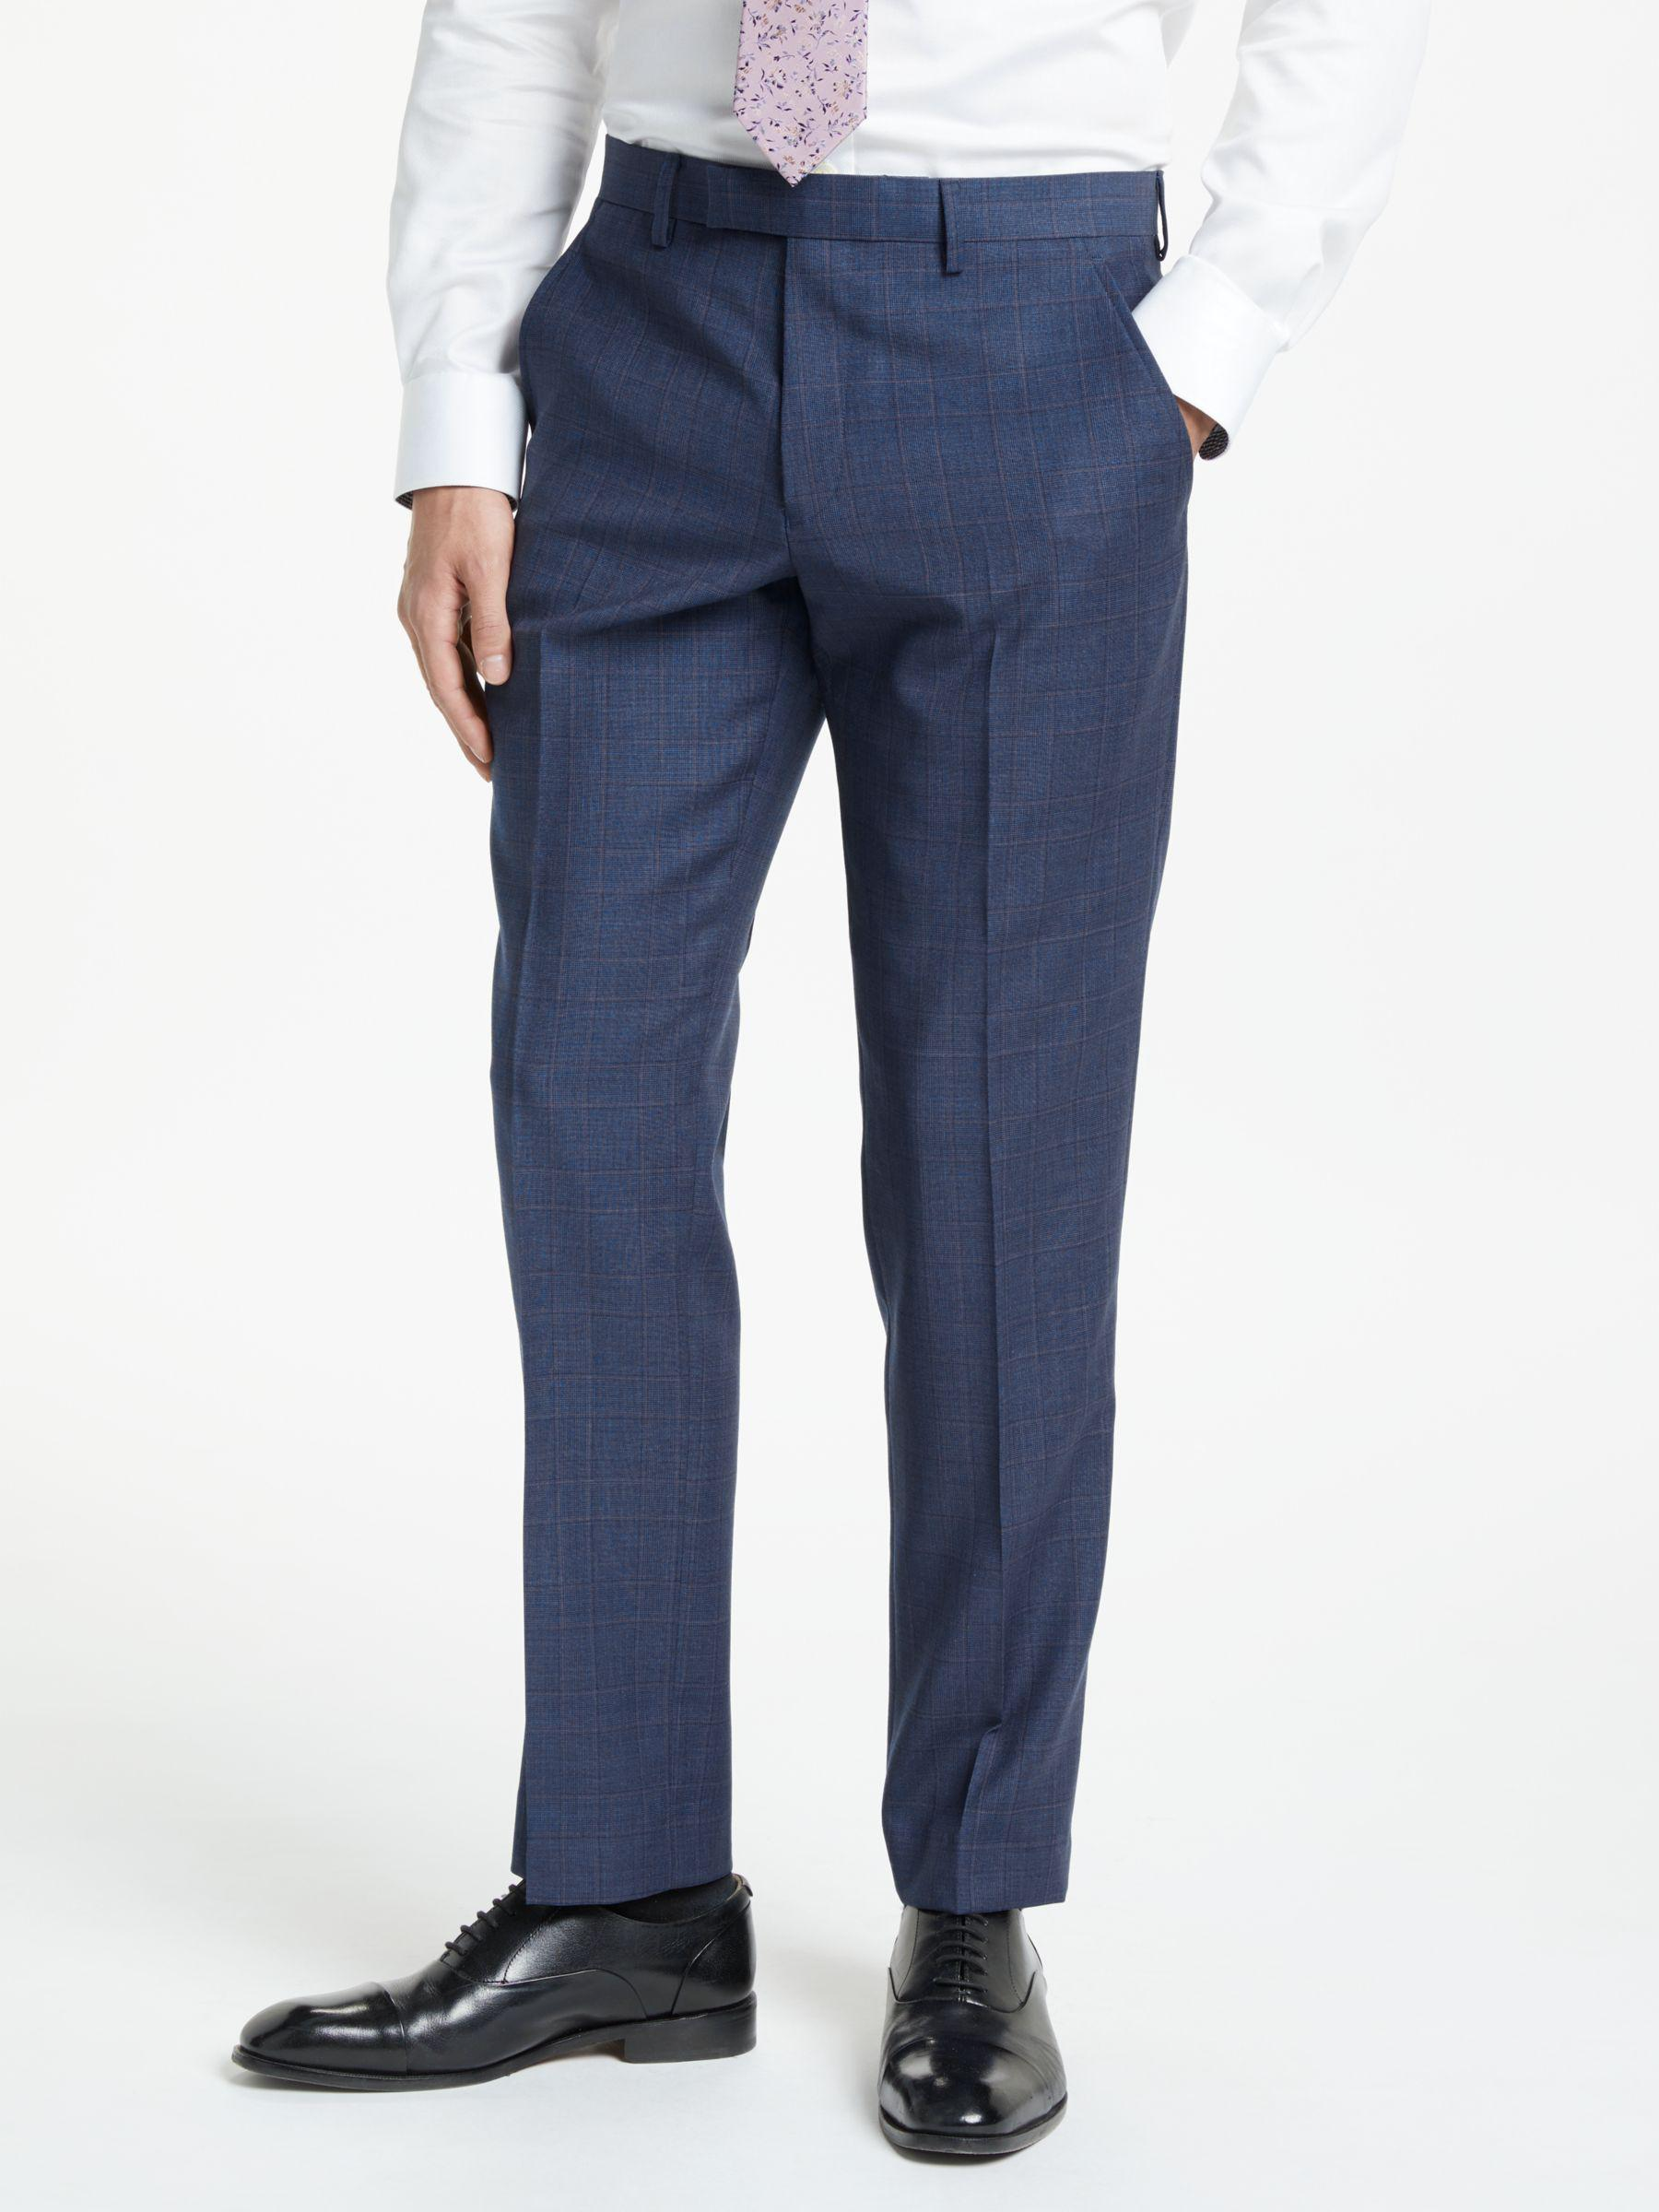 cb18d5f2dee5 John Lewis Wool Check Tailored Suit Trousers in Blue for Men - Lyst